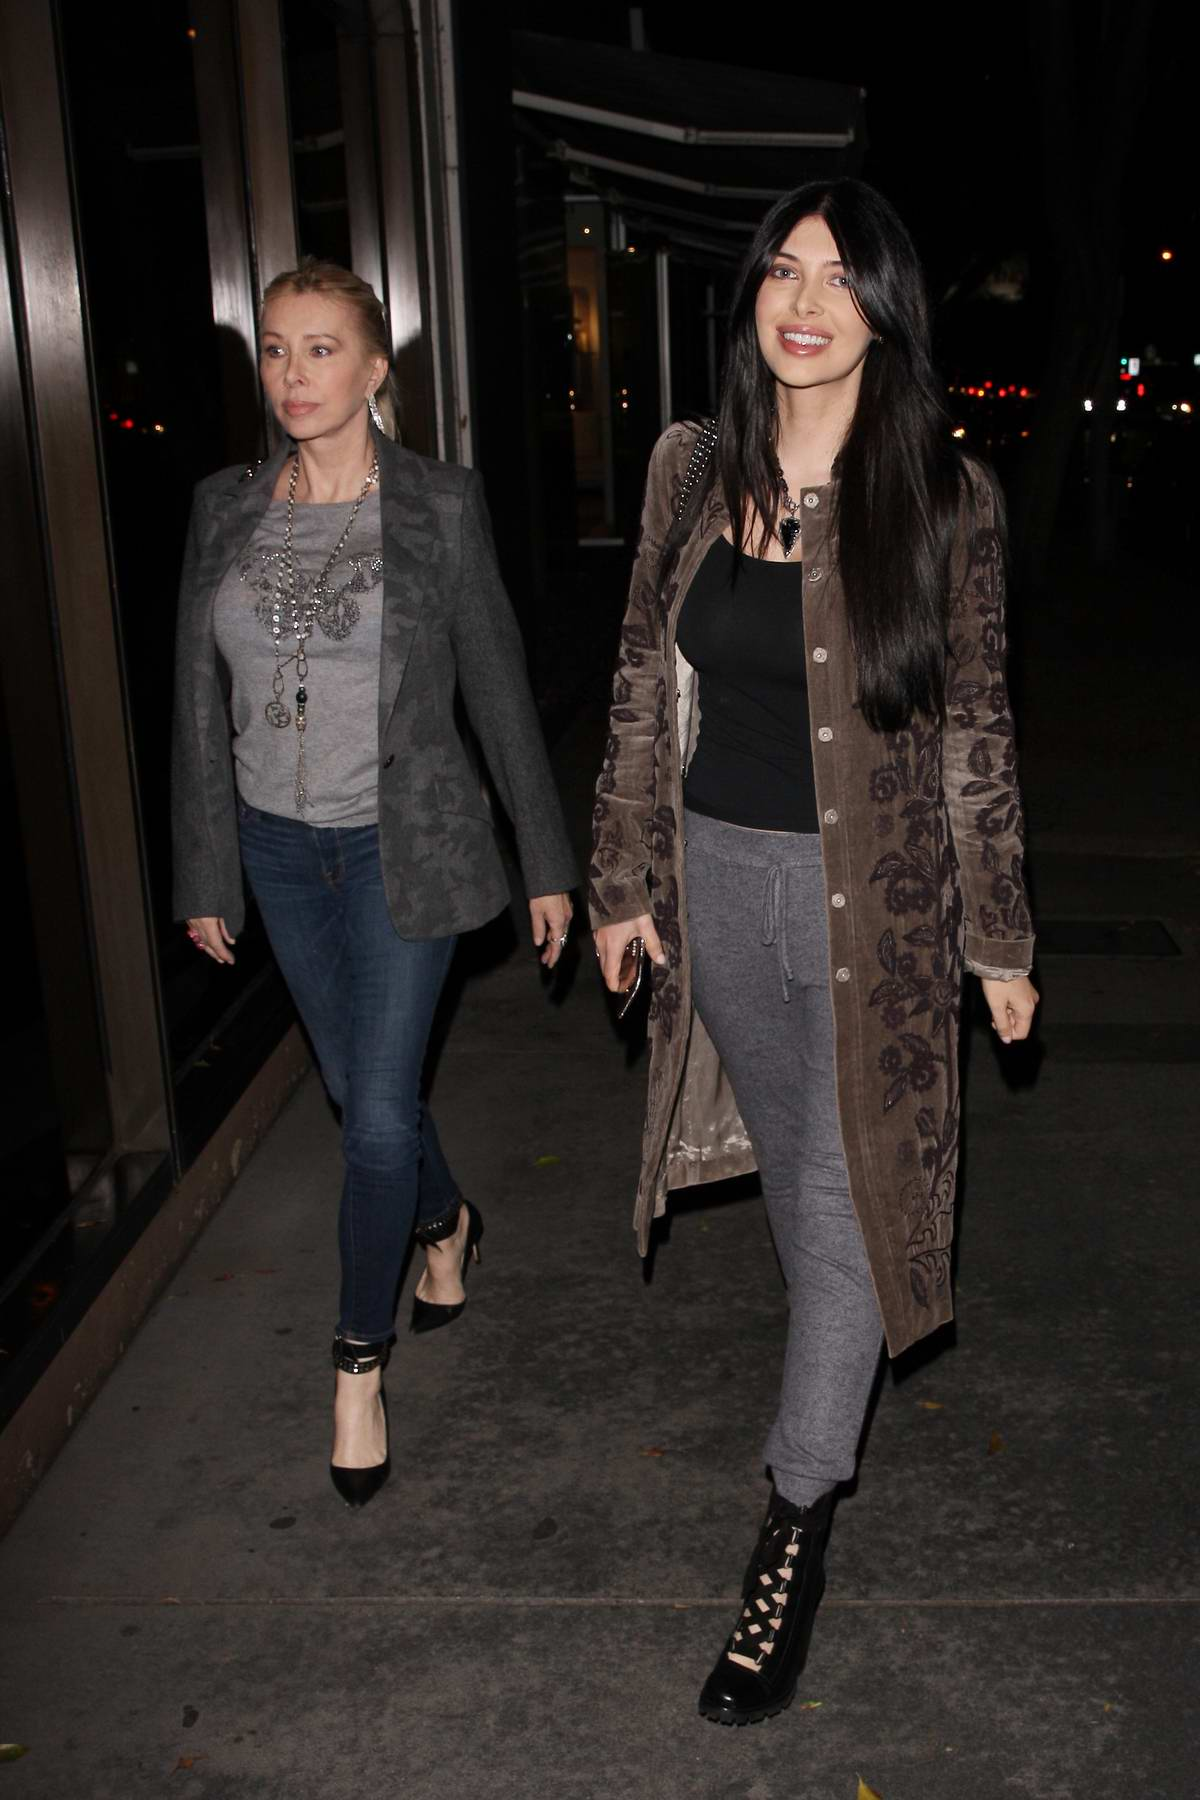 Brittny Gastineau and her mother head to Madeo restaurant for dinner in West Hollywood, Los Angeles